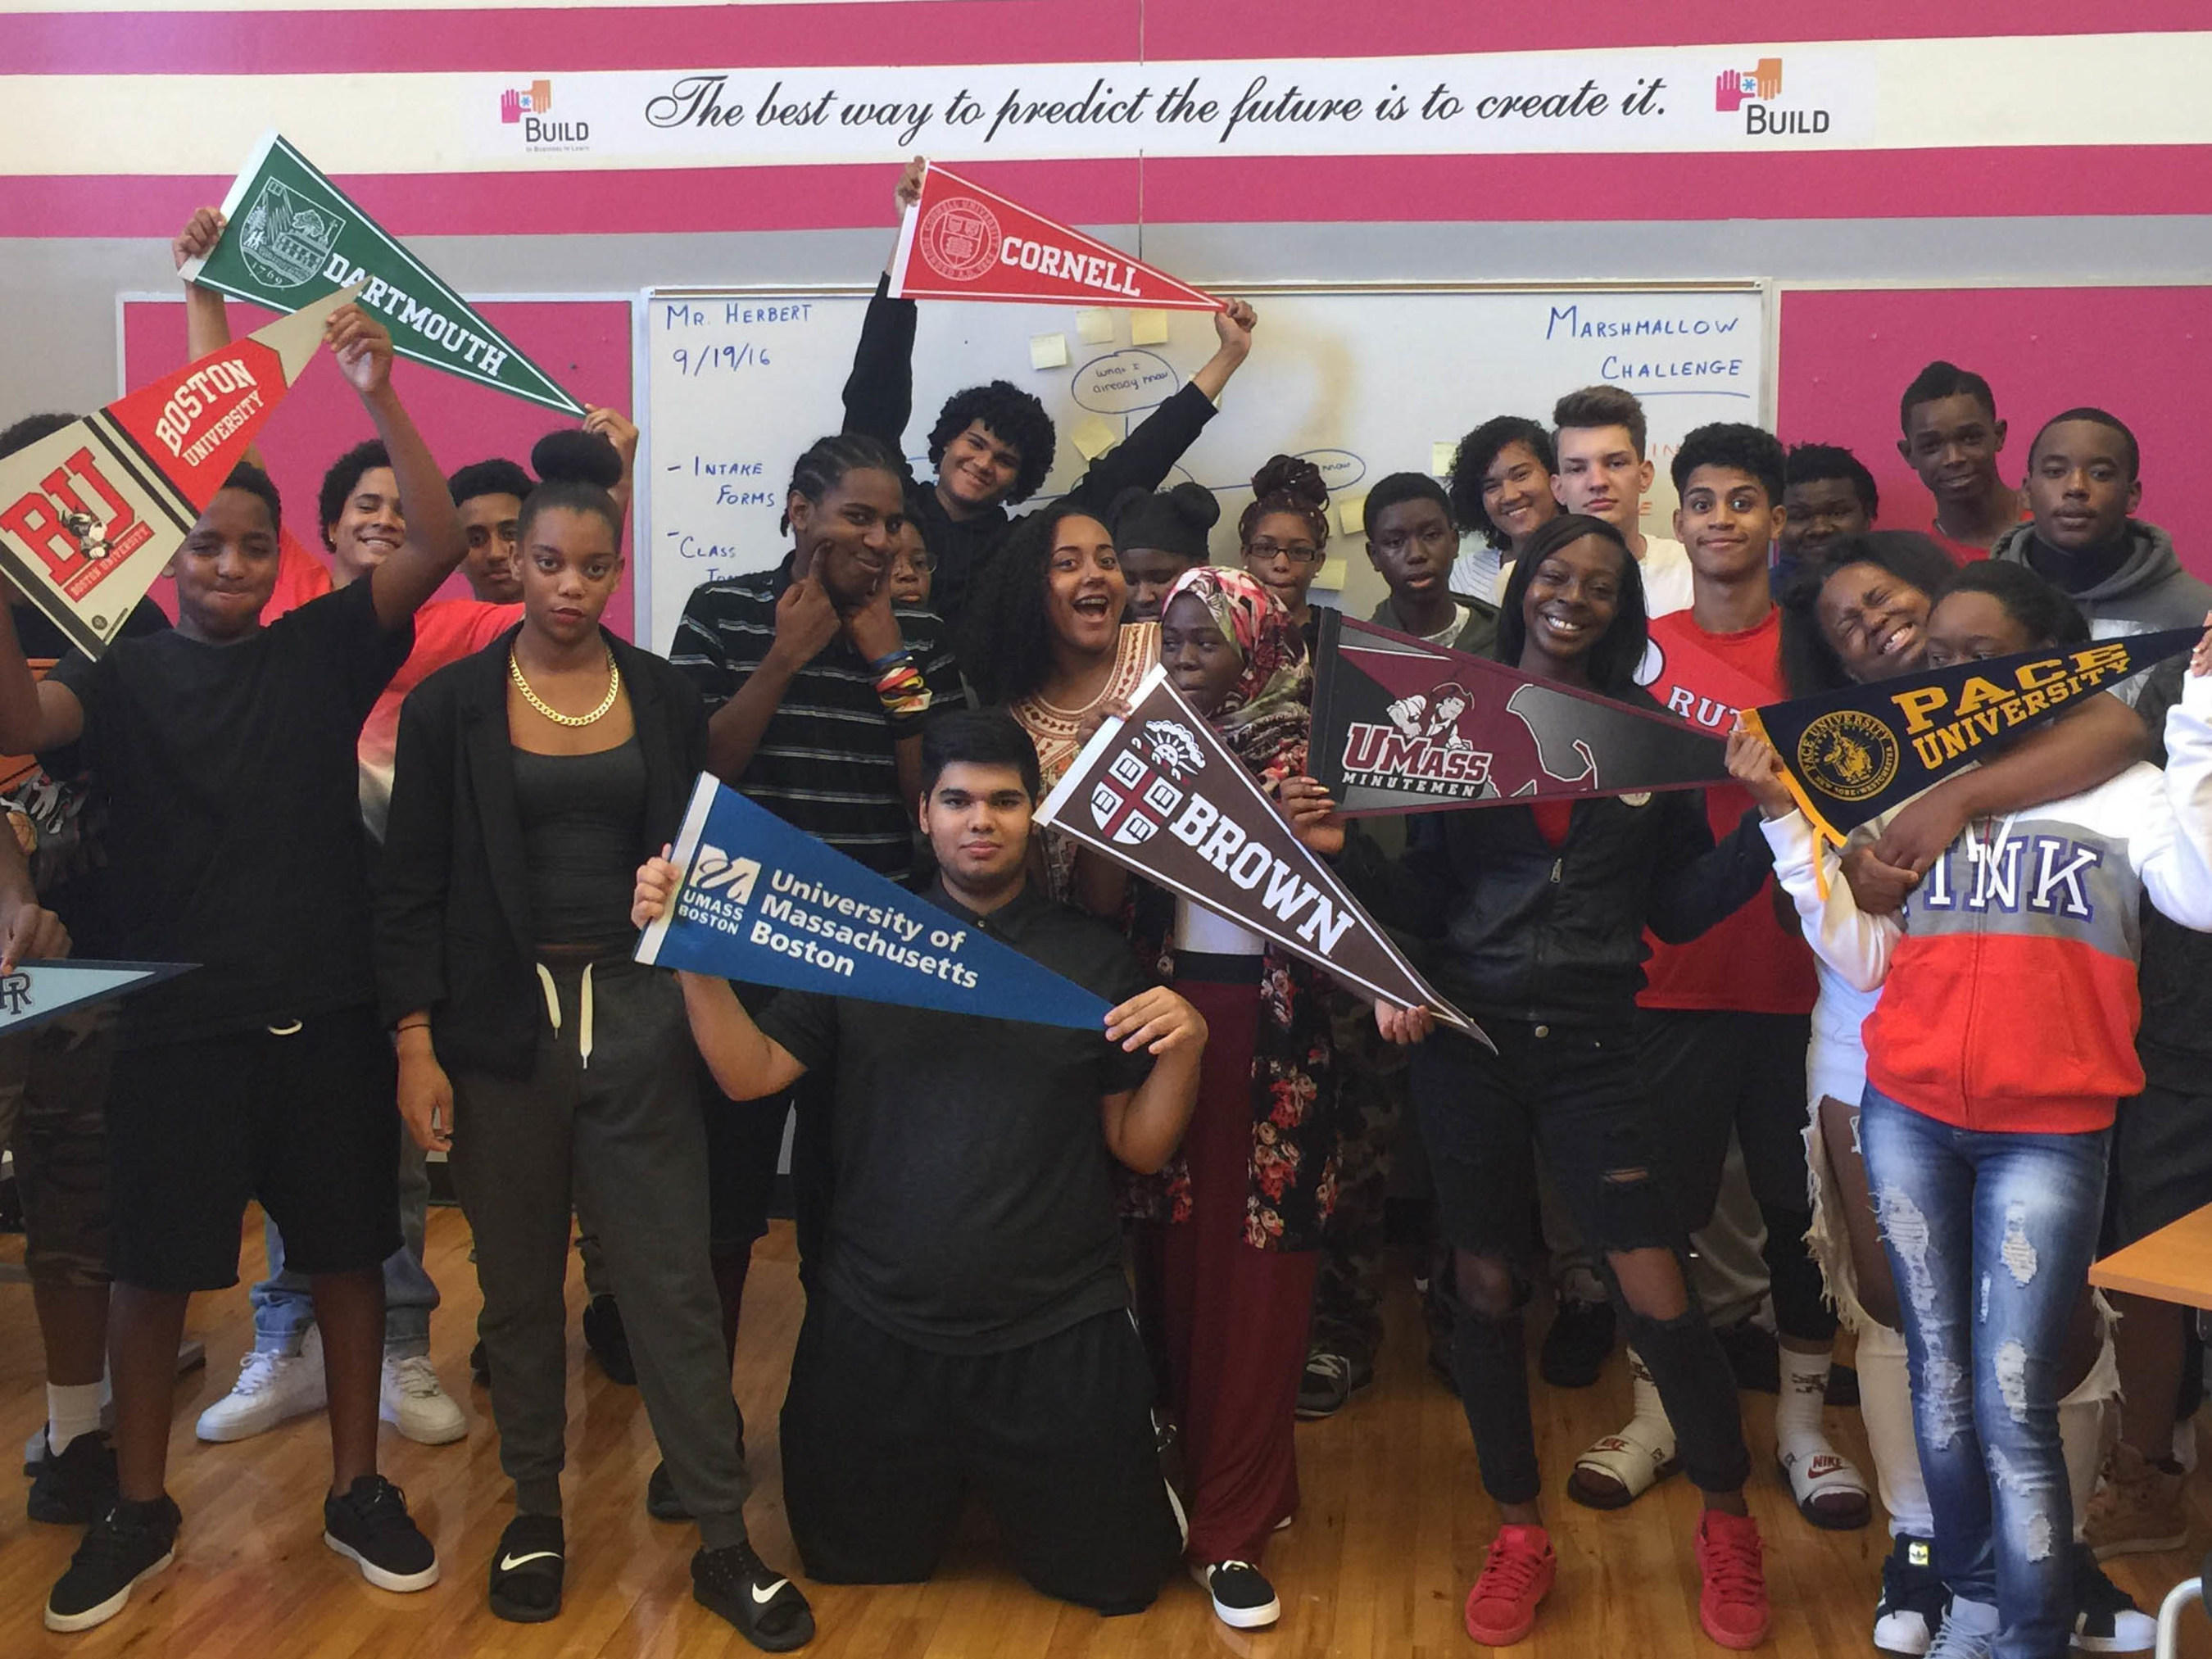 Students in BUILD's youth business incubator at Jeremiah E. Burke High School in Dorchester, Massachusetts.